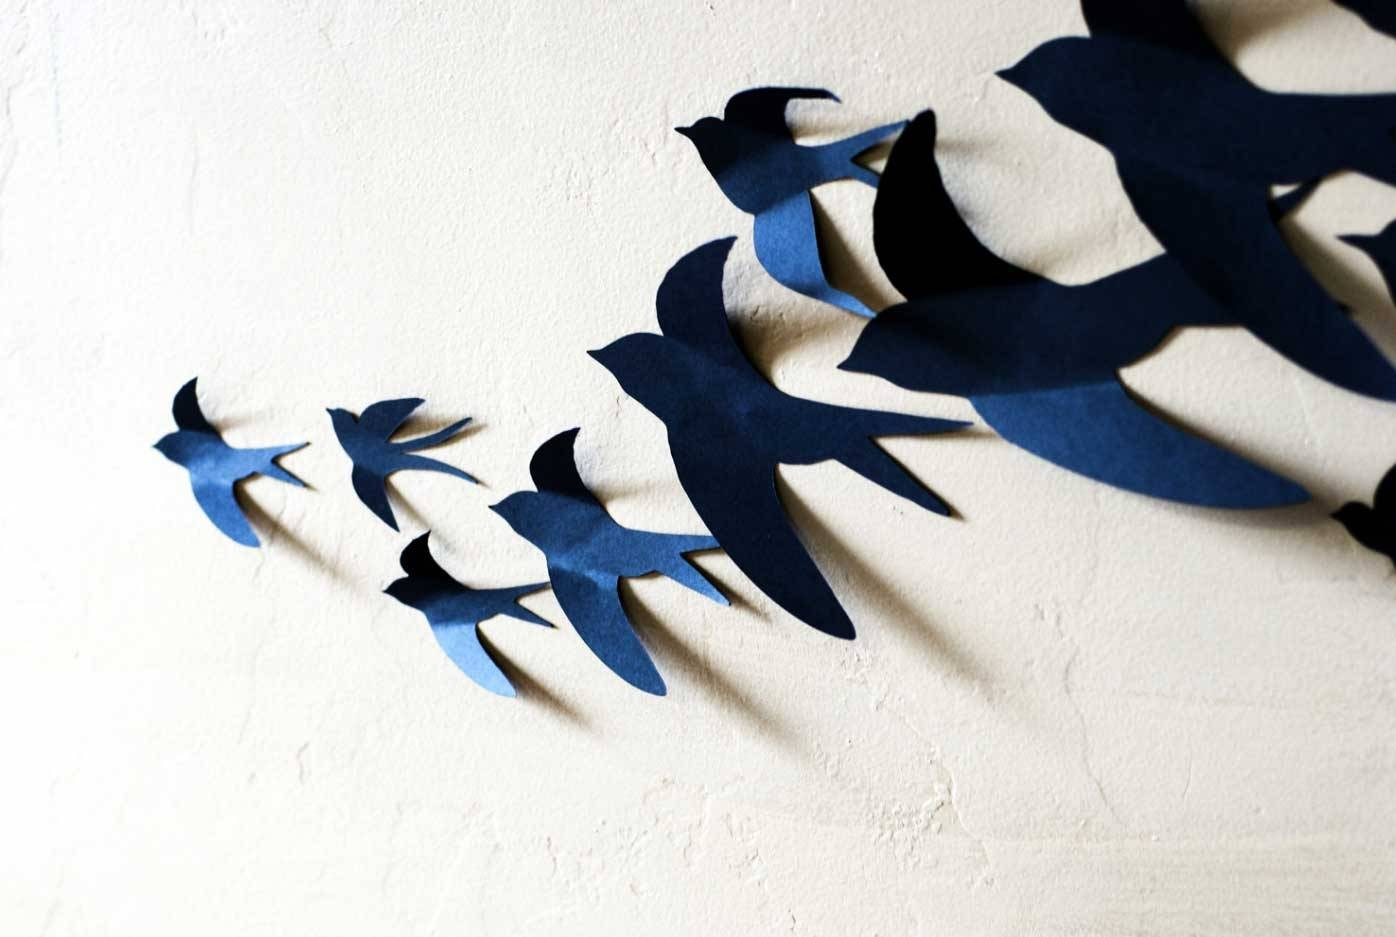 Flying Birds Metal Wall Art Urban Designs Flock | Home Interior Within 2017 Flying Birds Metal Wall Art (View 10 of 25)